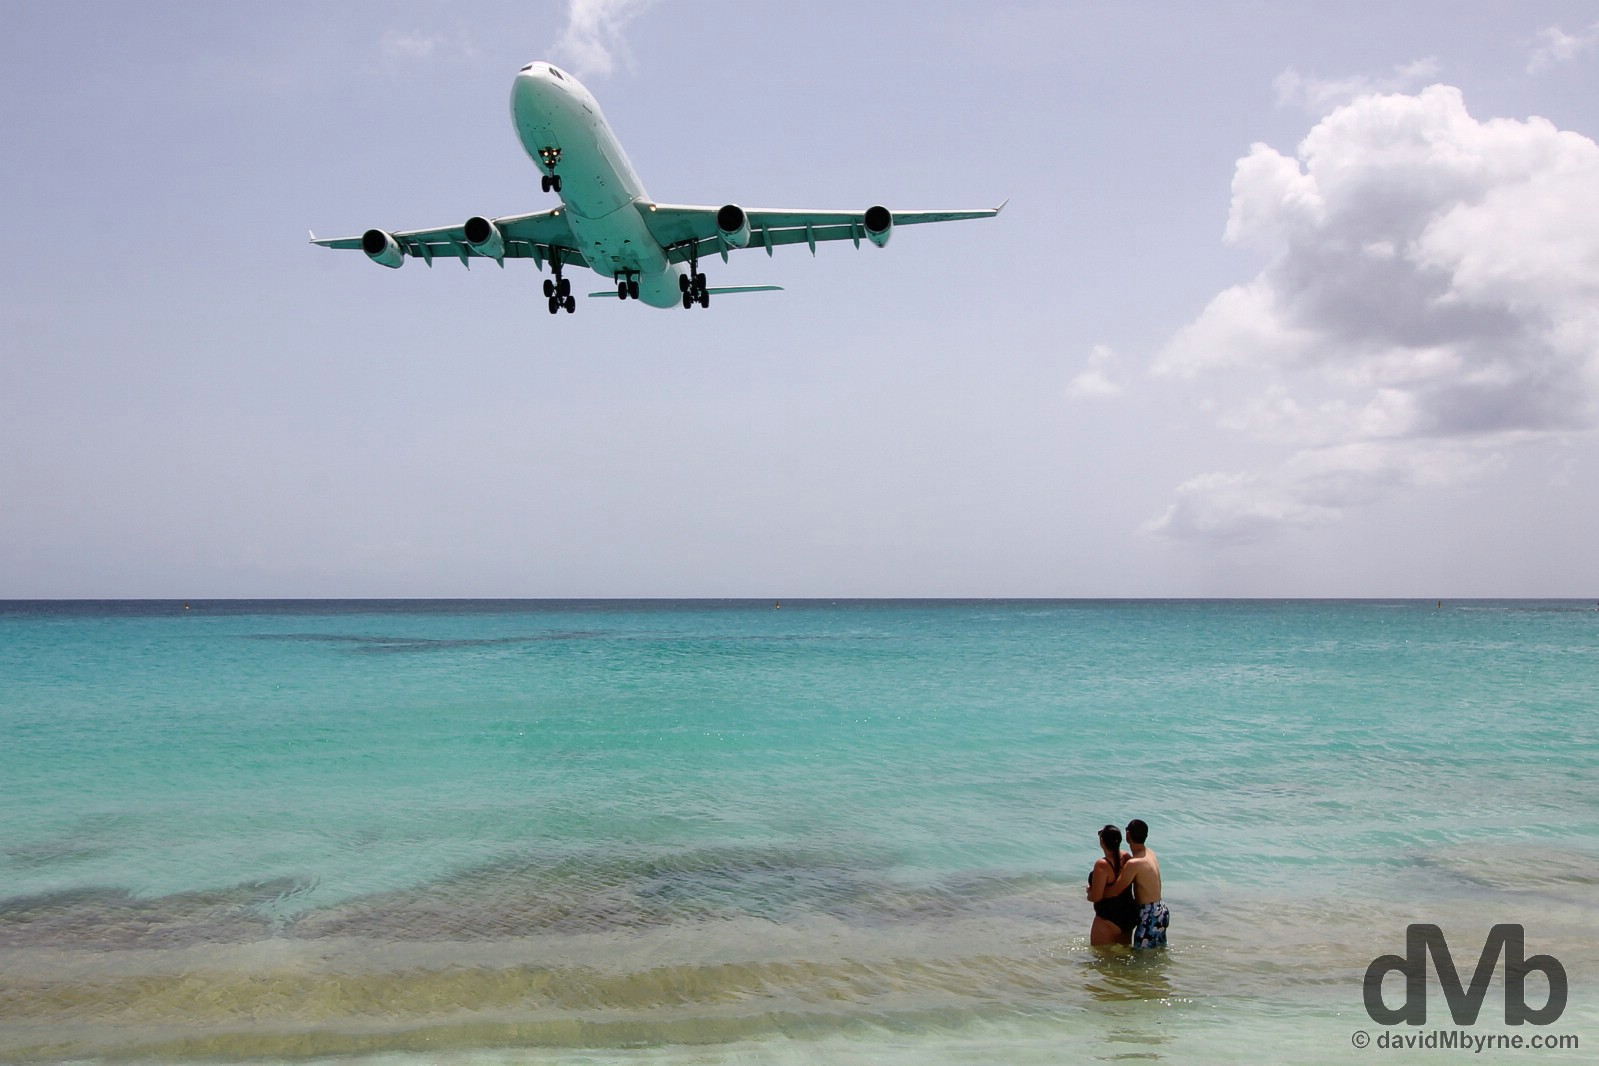 An approach to Juliana Airport as viewed from the warm waters of Maho Bay, Sint Maarten, Lesser Antilles. June 8, 2015.